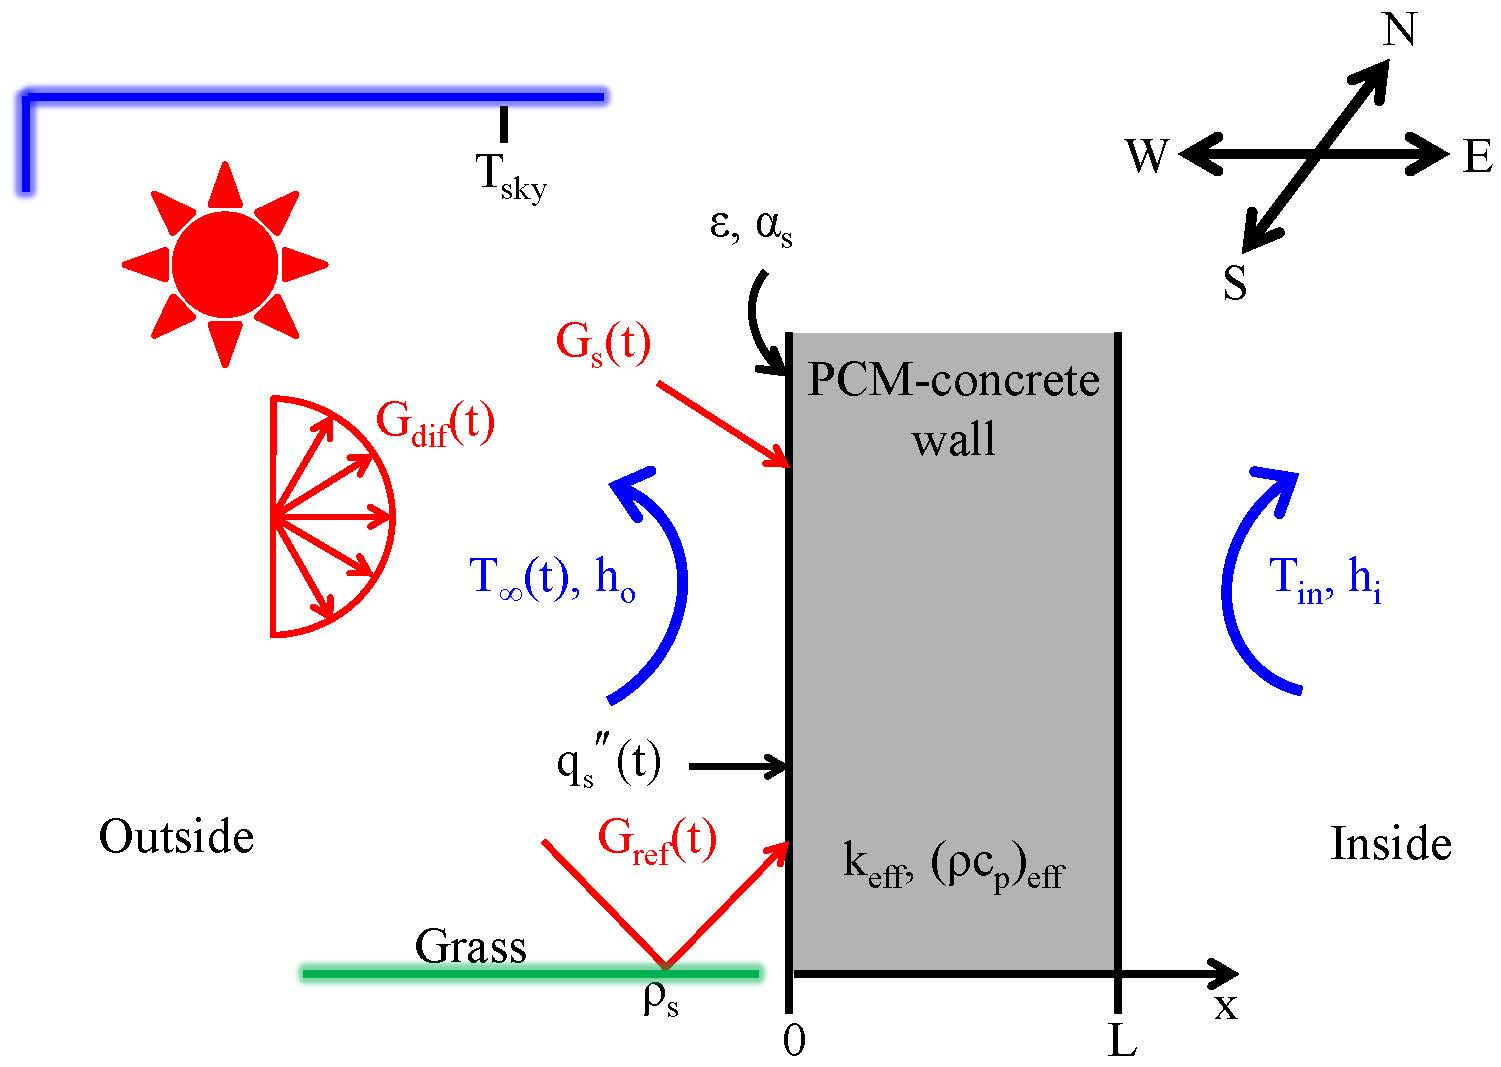 Annual Energy Analysis Of Pcm Concrete Composites For Wall Schematic A Homogeneous Thickness L 10 Cm With Effective Volumetric Heat Capacity Cpeff And Thermal Conductivity Keff